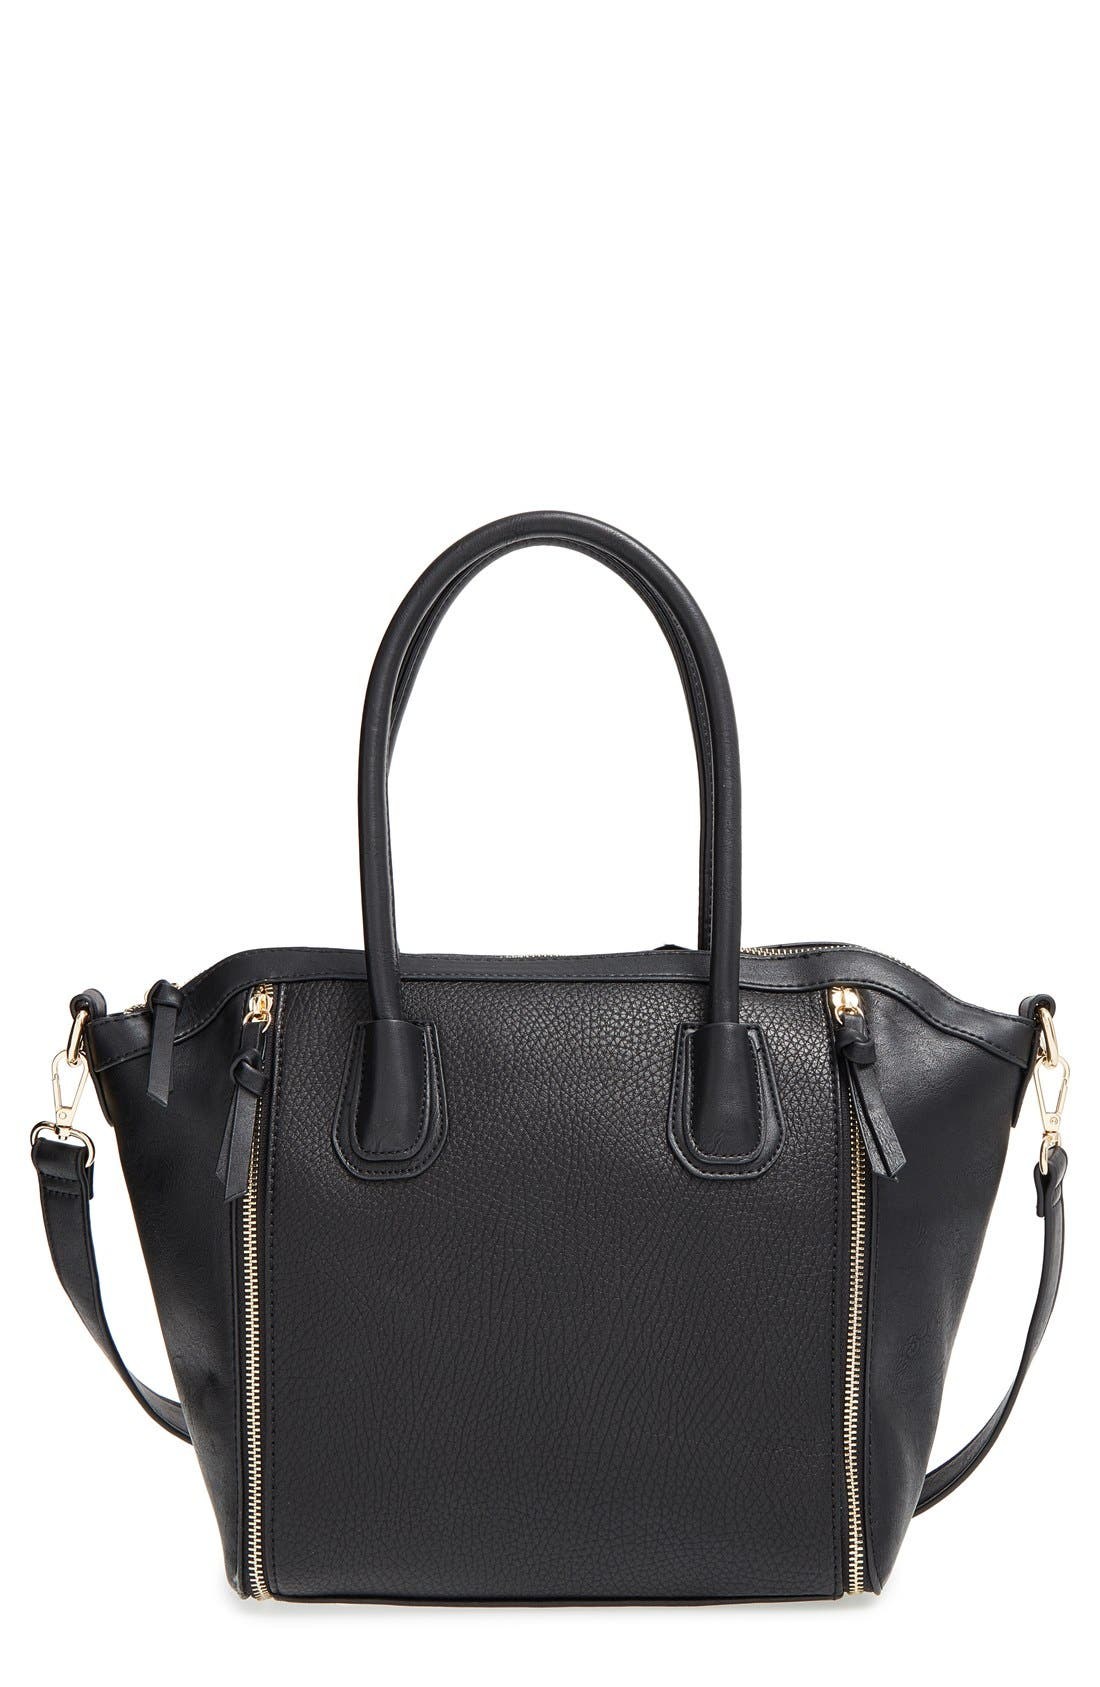 Main Image - Sole Society 'Kaylen' Faux Leather Crossbody Satchel